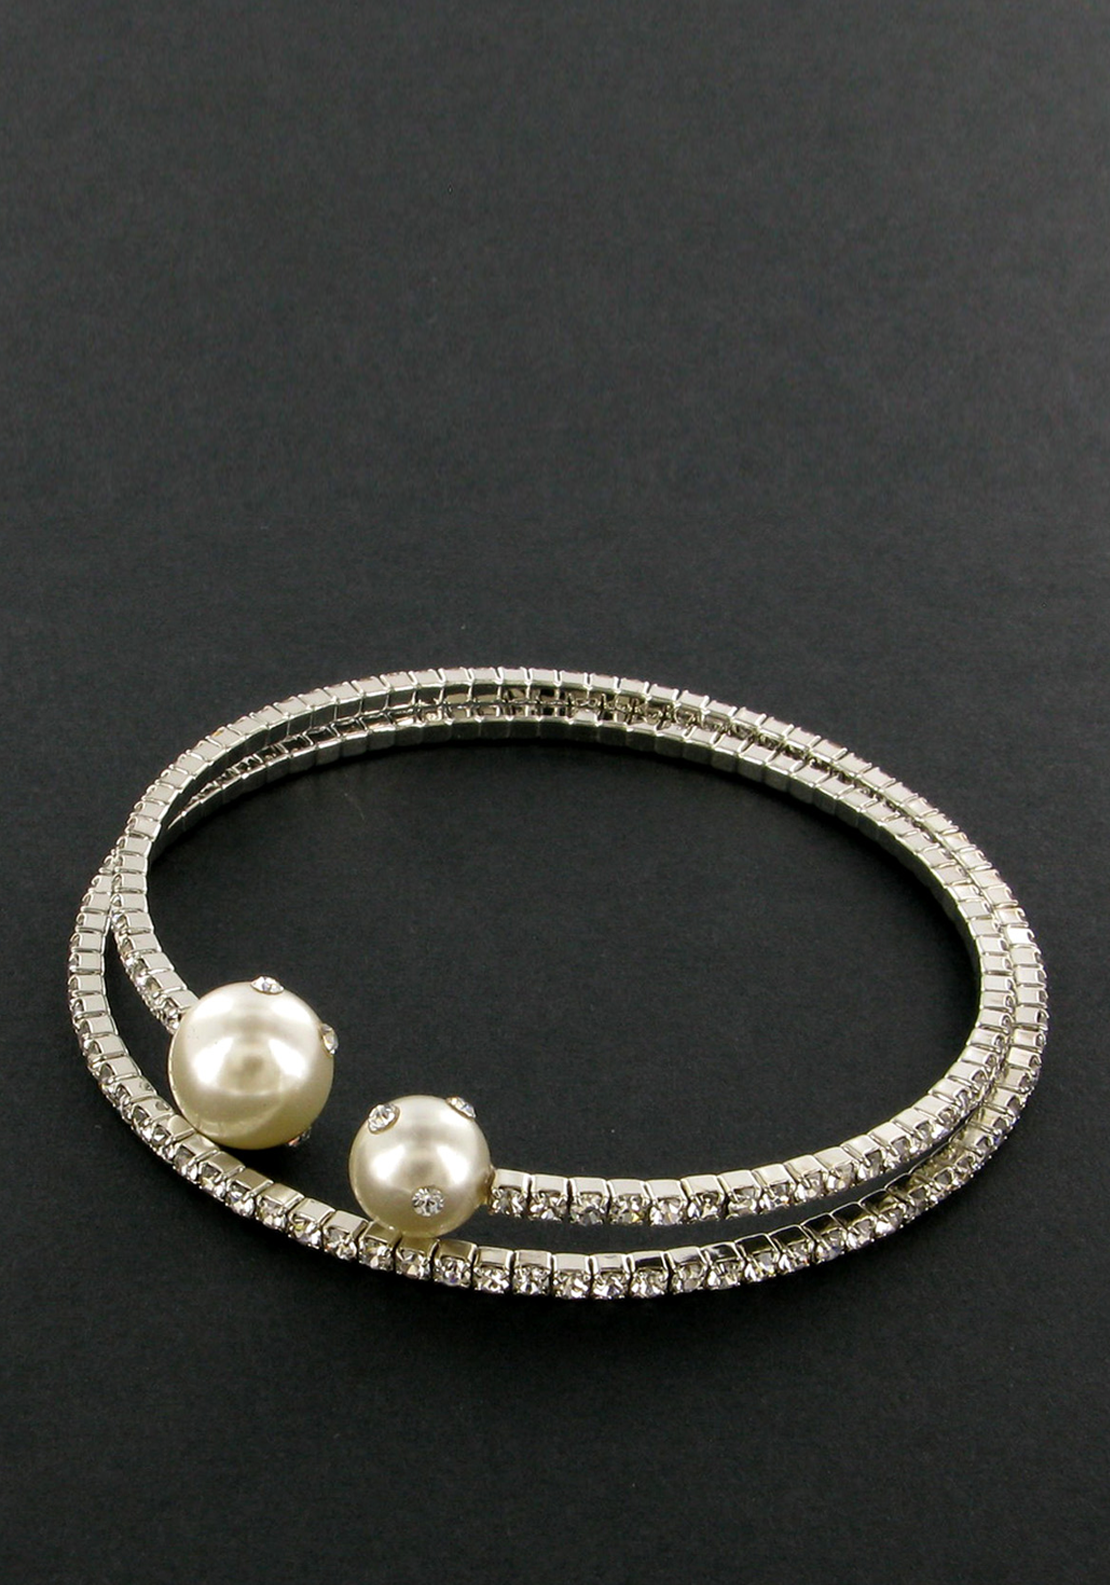 Nour London Wrap Bracelet with Faux Pearls and Crystals, Silver